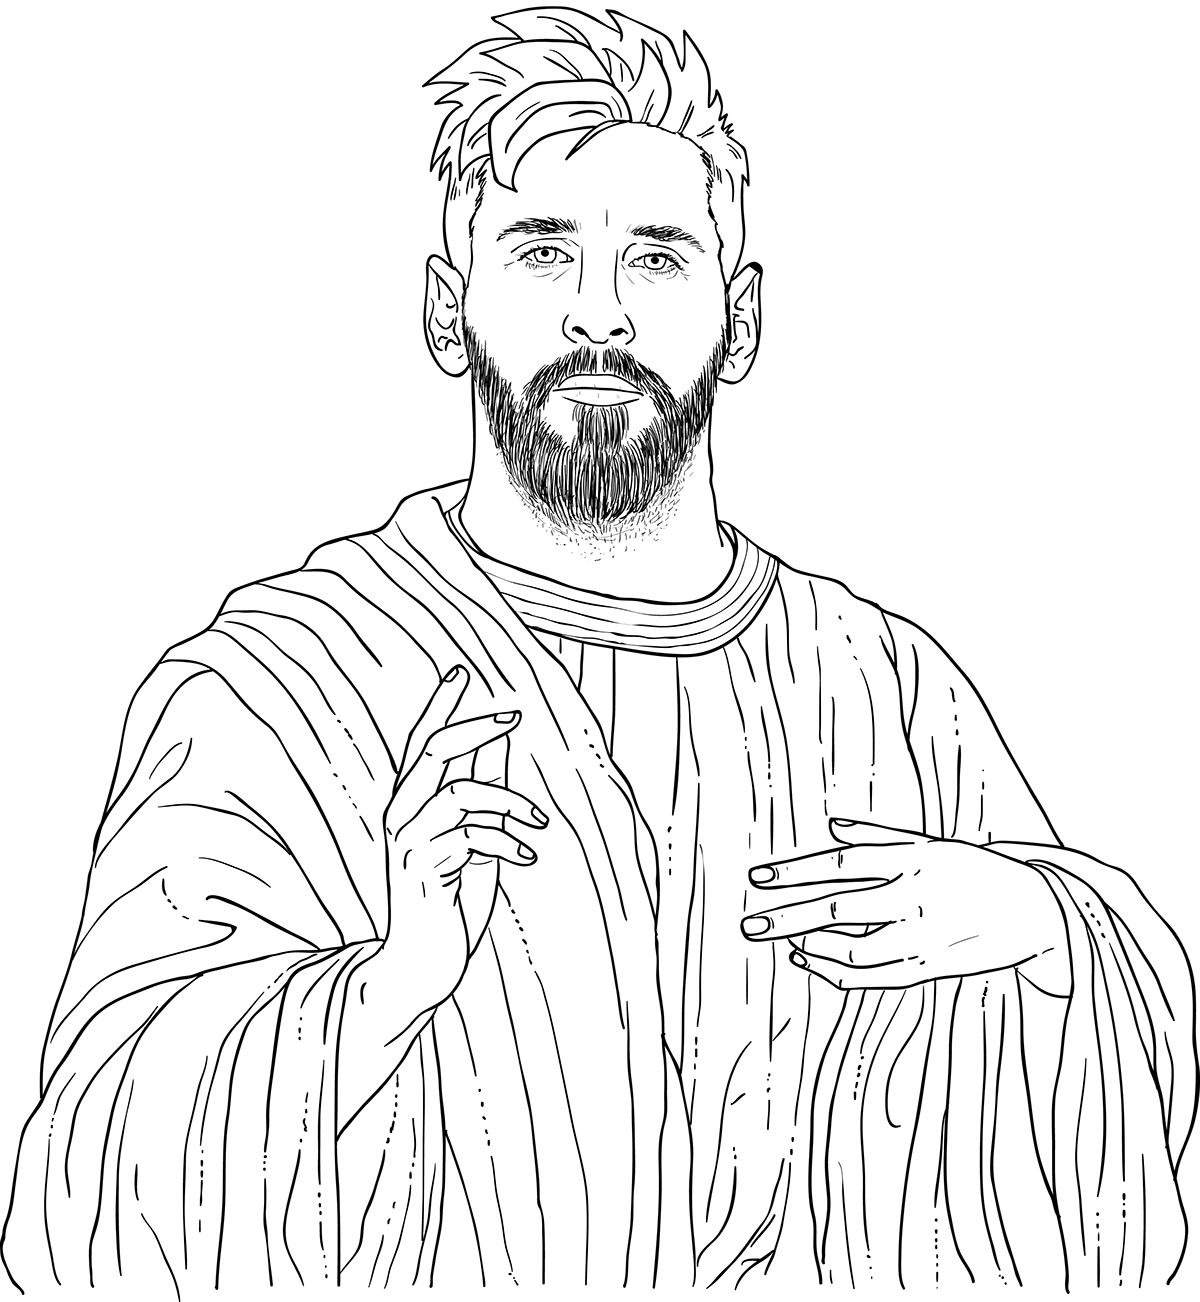 Free Lionel Messi Messiah Coloring Pages Printable Shelter Messi Coloring Pages Coloring Pages For Kids